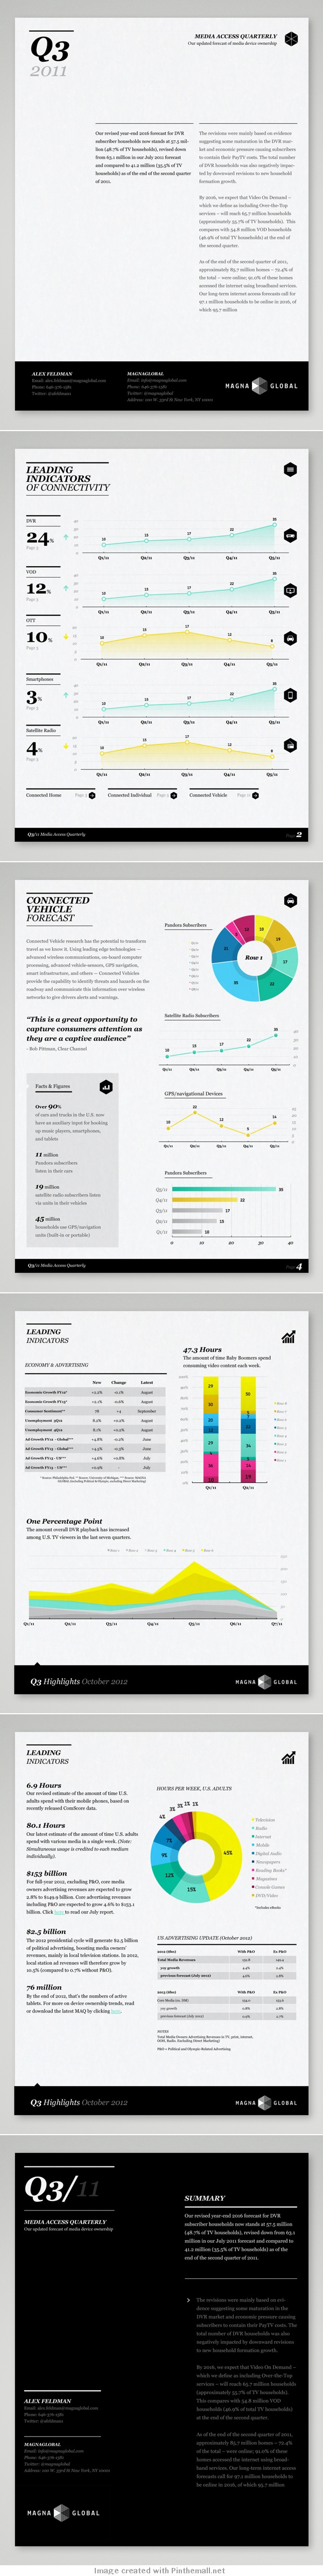 Magnaglobal Infographic Excel Template L   Resume Invoice